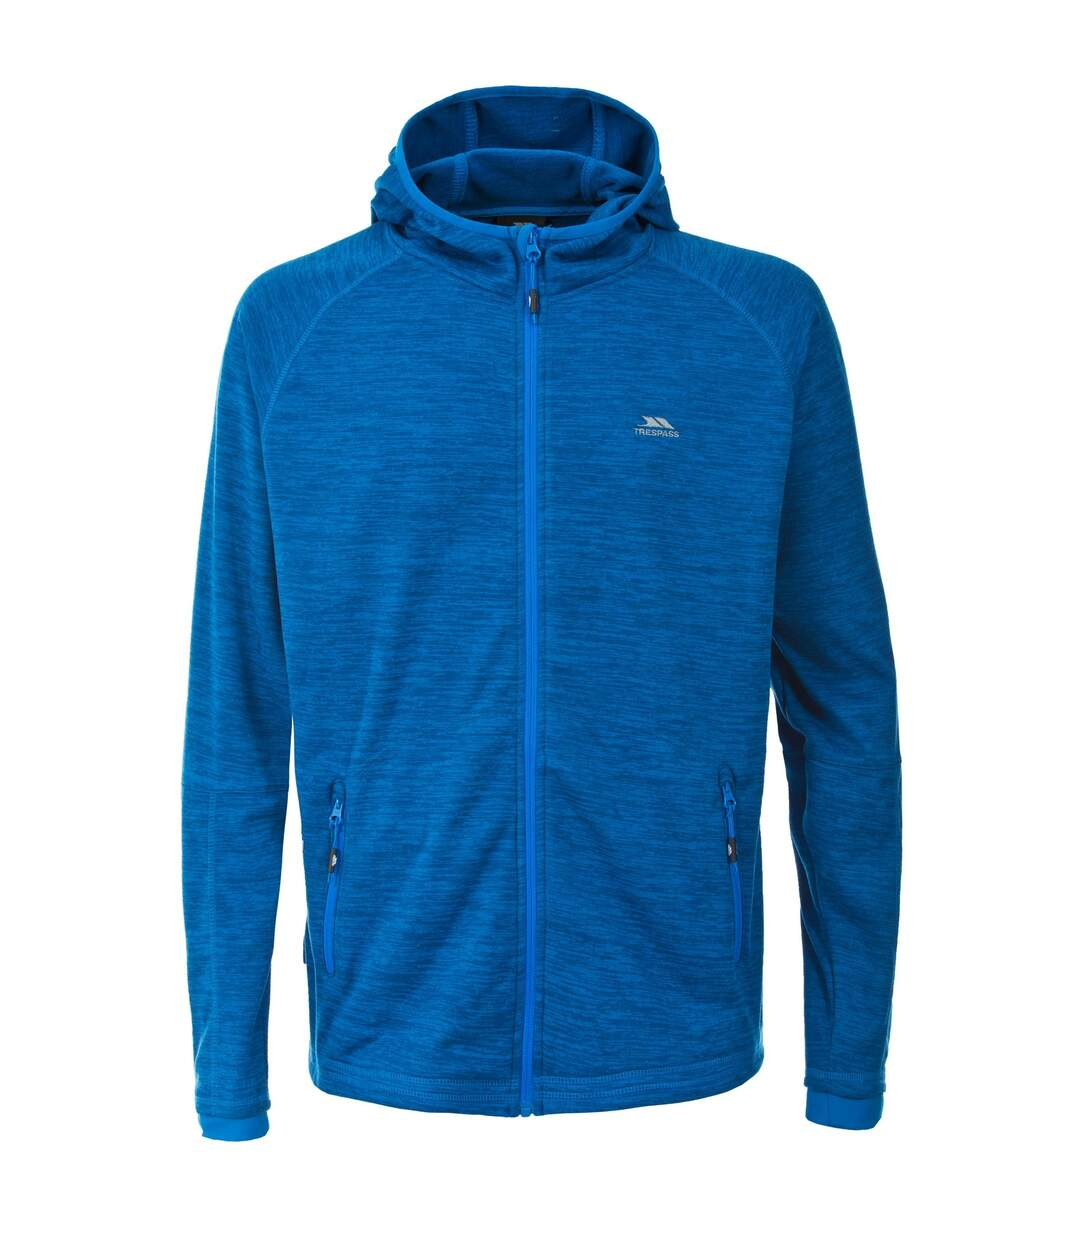 Trespass Mens Northwood Fleece Jacket (Bright Blue Marl) - UTTP4375